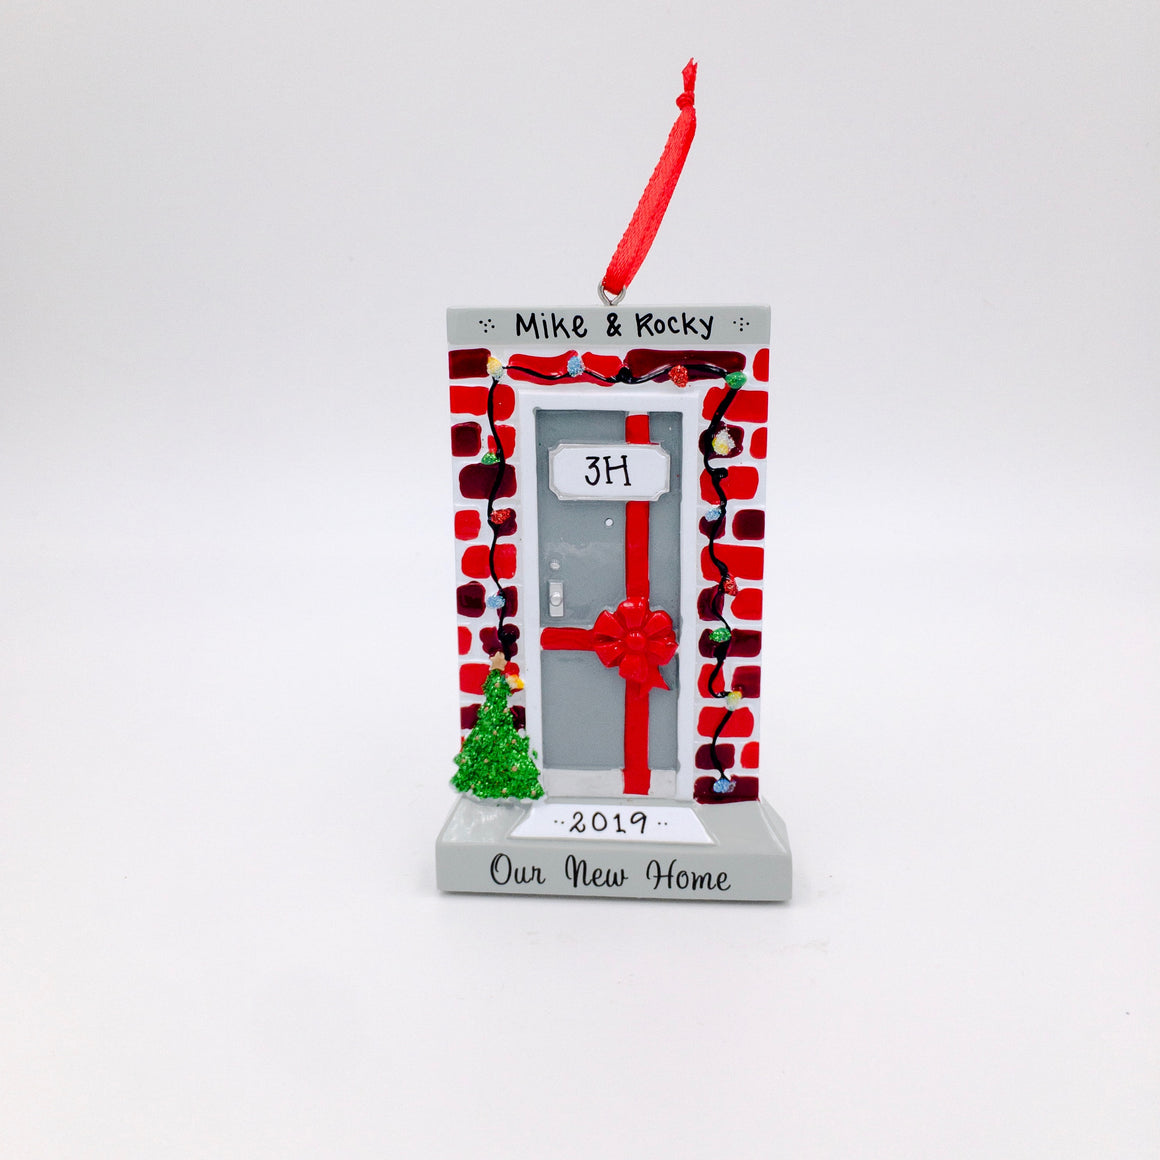 Our New Home Personalized Christmas Ornament / Brick House Ornament / New Home